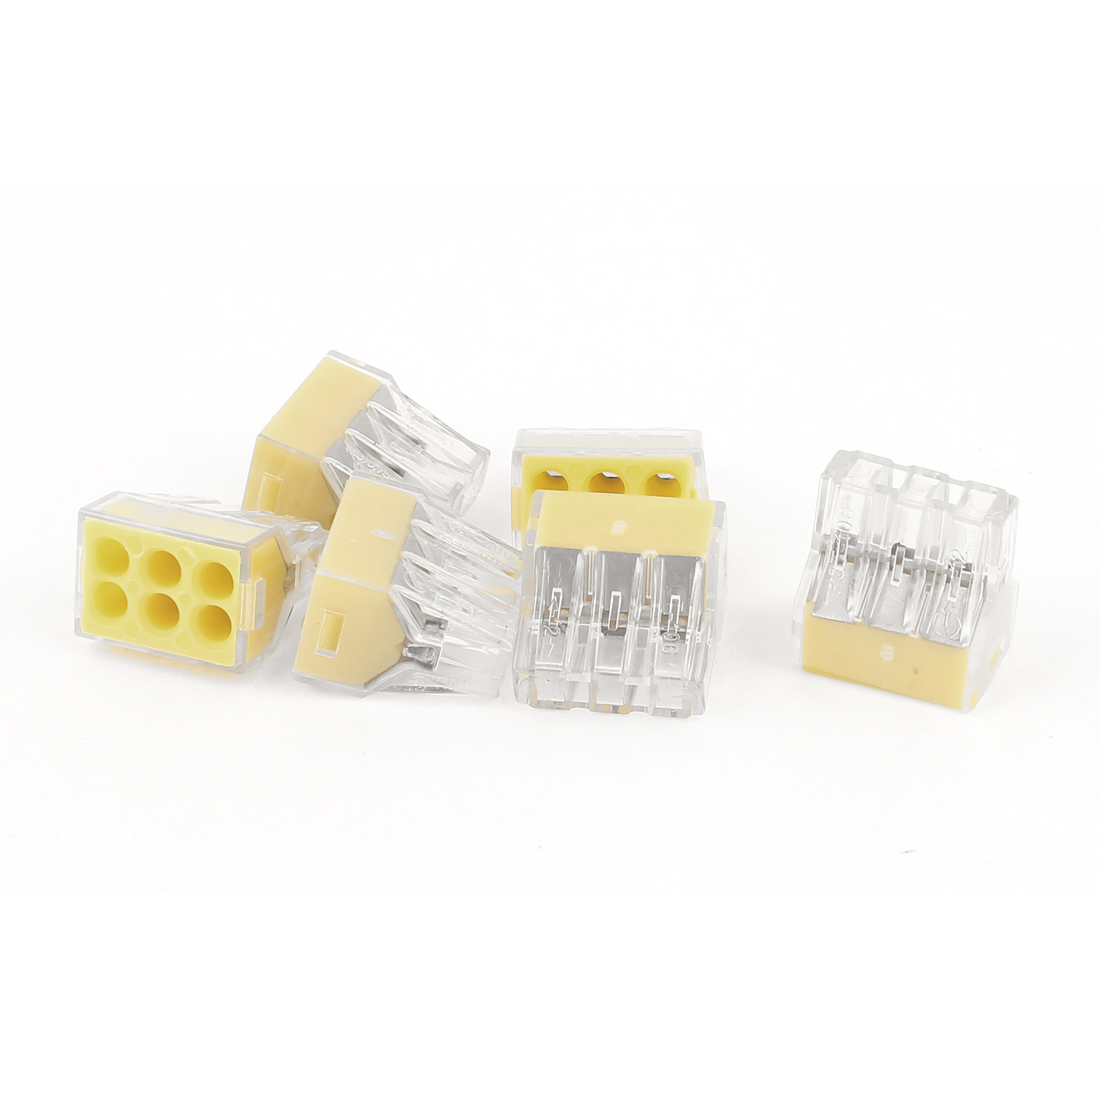 6Pcs PCT-106 6 Port Yellow Push-in Wire Connector for 0.75-2.5mm2 Wire